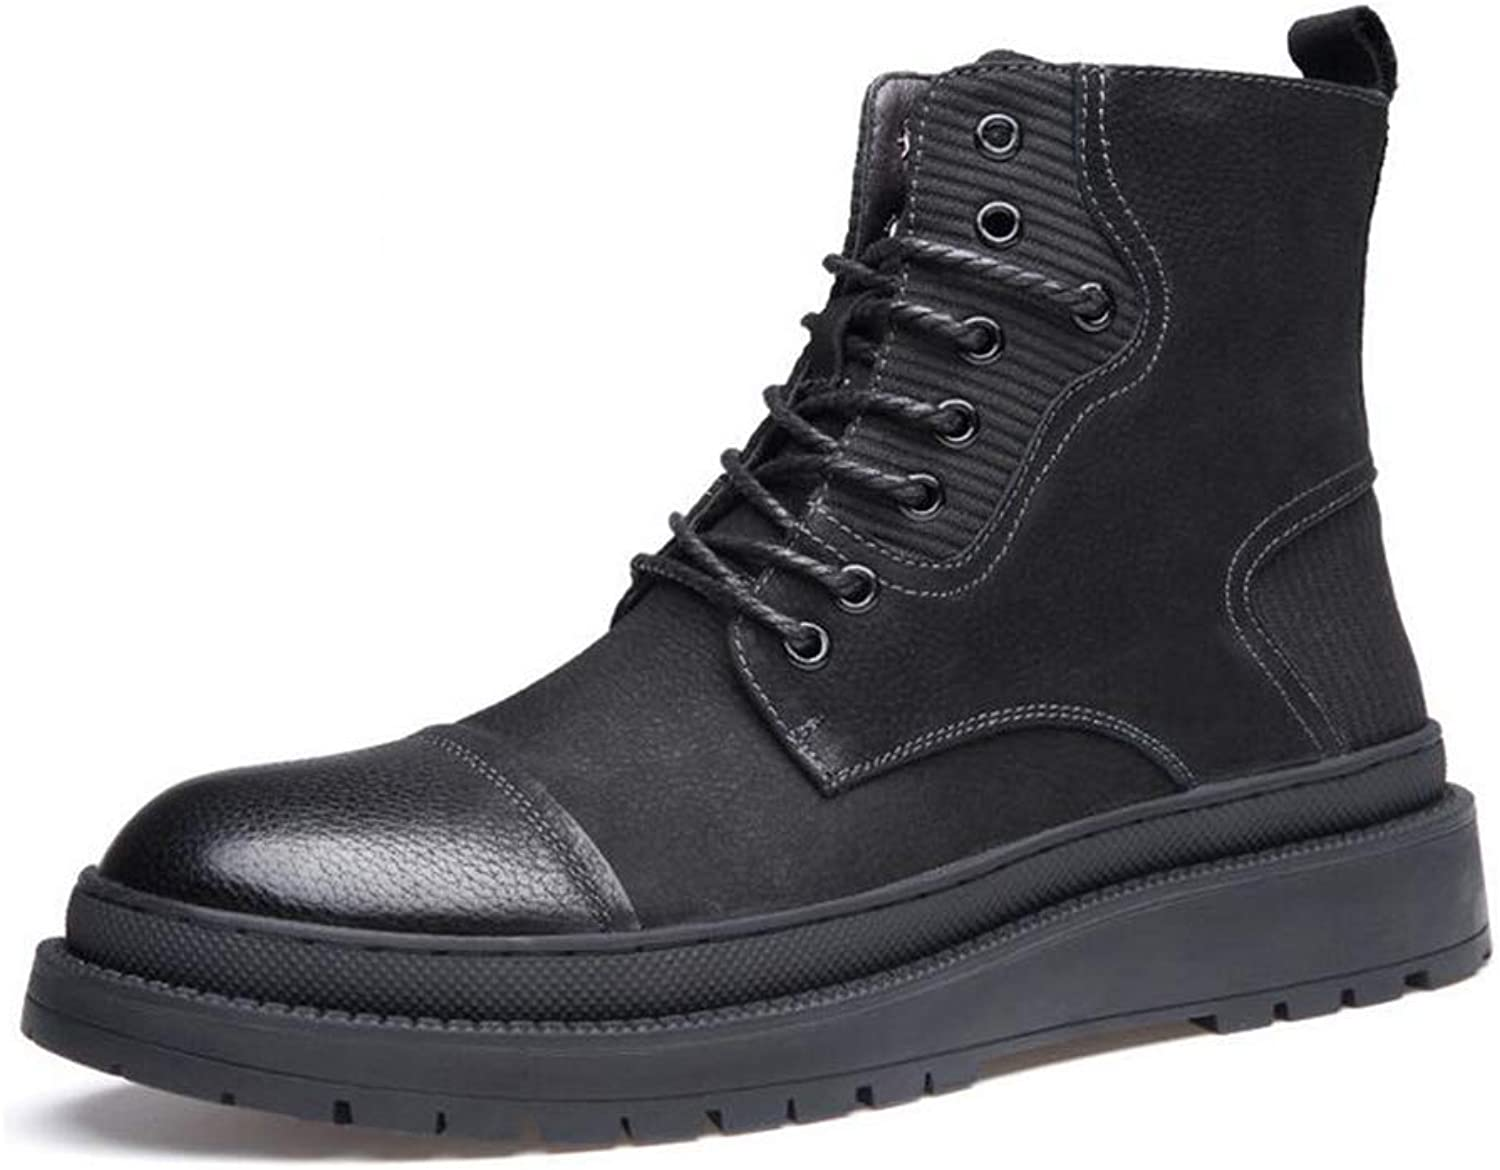 Y-H Men's shoes, Microfiber Fall winter High-top Military Boots, Slip-Ons Lace-up Martins Boots, Formal shoes,Outdoor Warm Plus Velvet Cotton Winter Boots,Formal Business Work